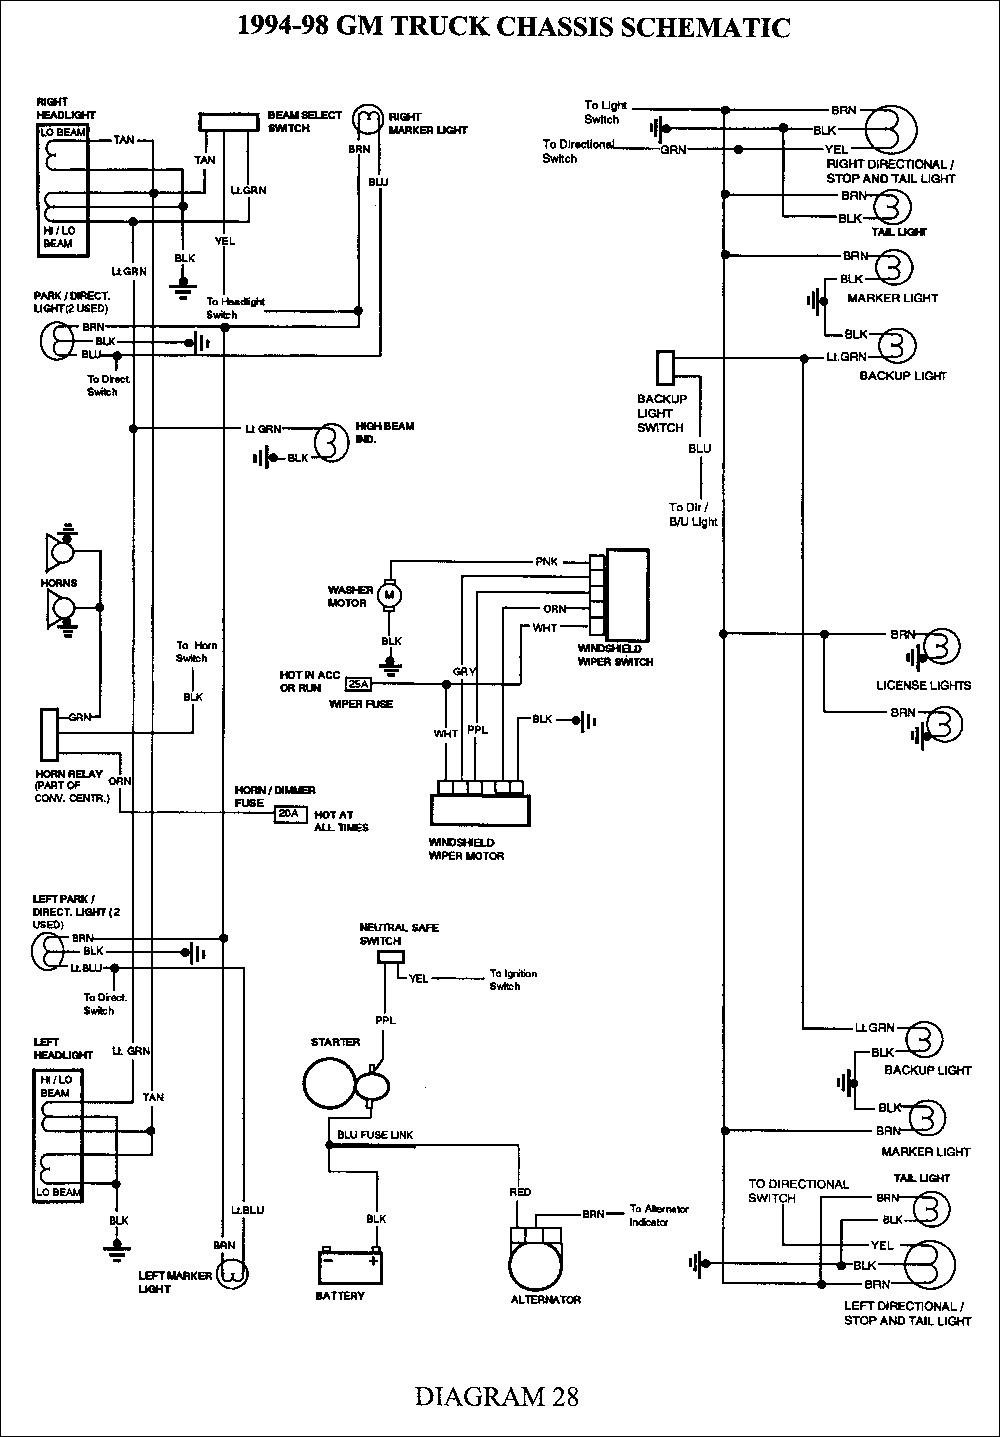 96 Tahoe 02 Wiring Diagram | Wiring Diagram on